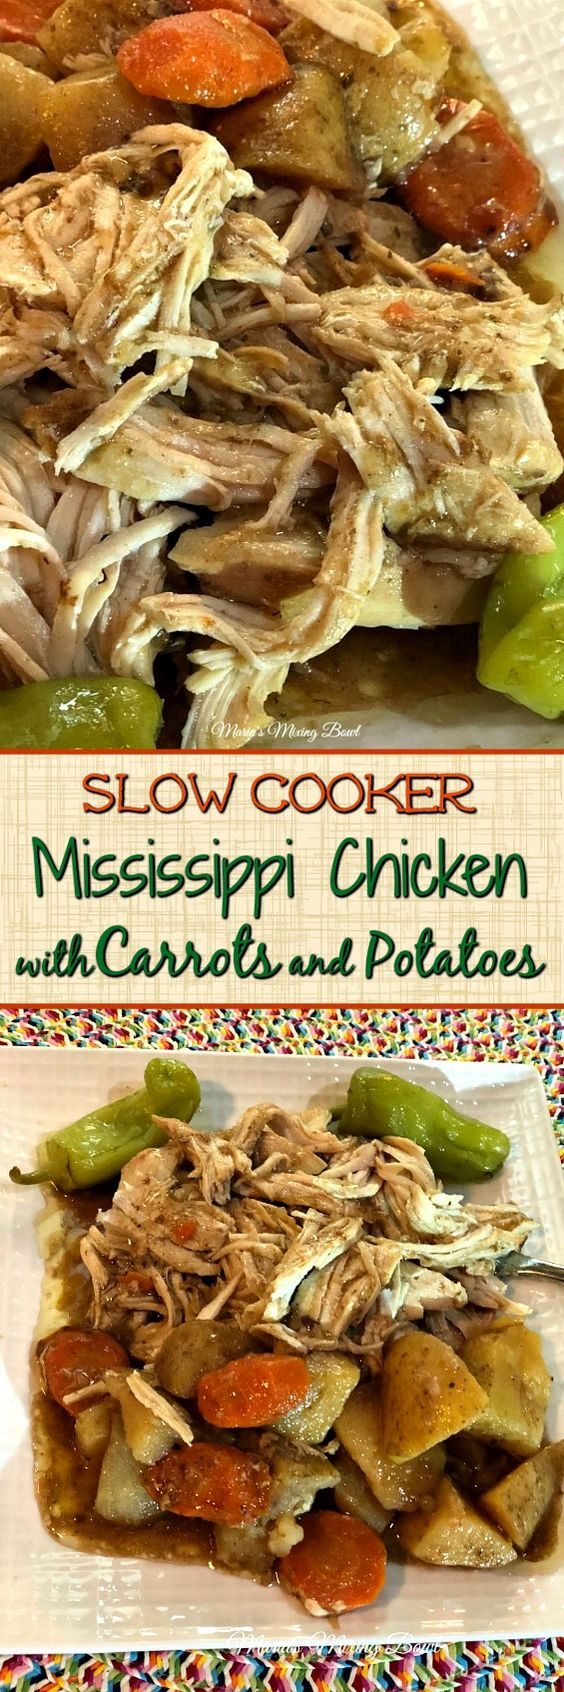 Slow Cooker Mississippi Chicken with Carrots and Potatoes - As everyone one knows the star of what makes a Mississippi recipe is butter, ranch dressing, Au jus gravy andpepperoncini peppers. This recipe is just a little bit different but just as delicious!